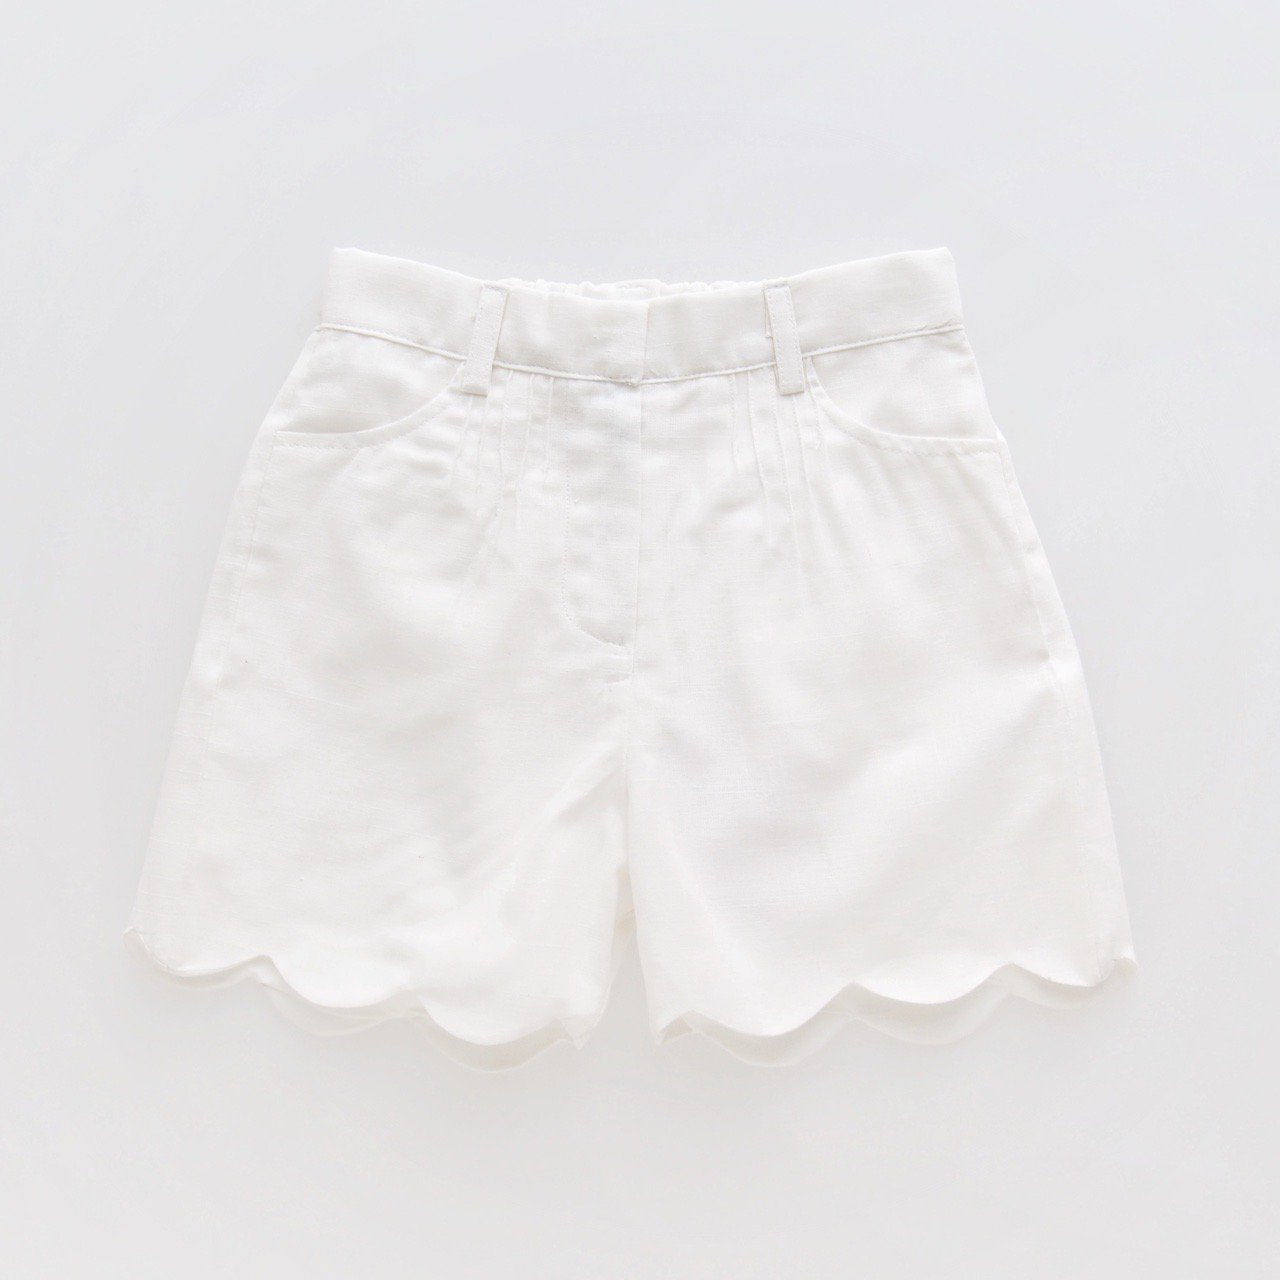 <img class='new_mark_img1' src='https://img.shop-pro.jp/img/new/icons14.gif' style='border:none;display:inline;margin:0px;padding:0px;width:auto;' />Kidiwi - SANDRA shorts (White linen)